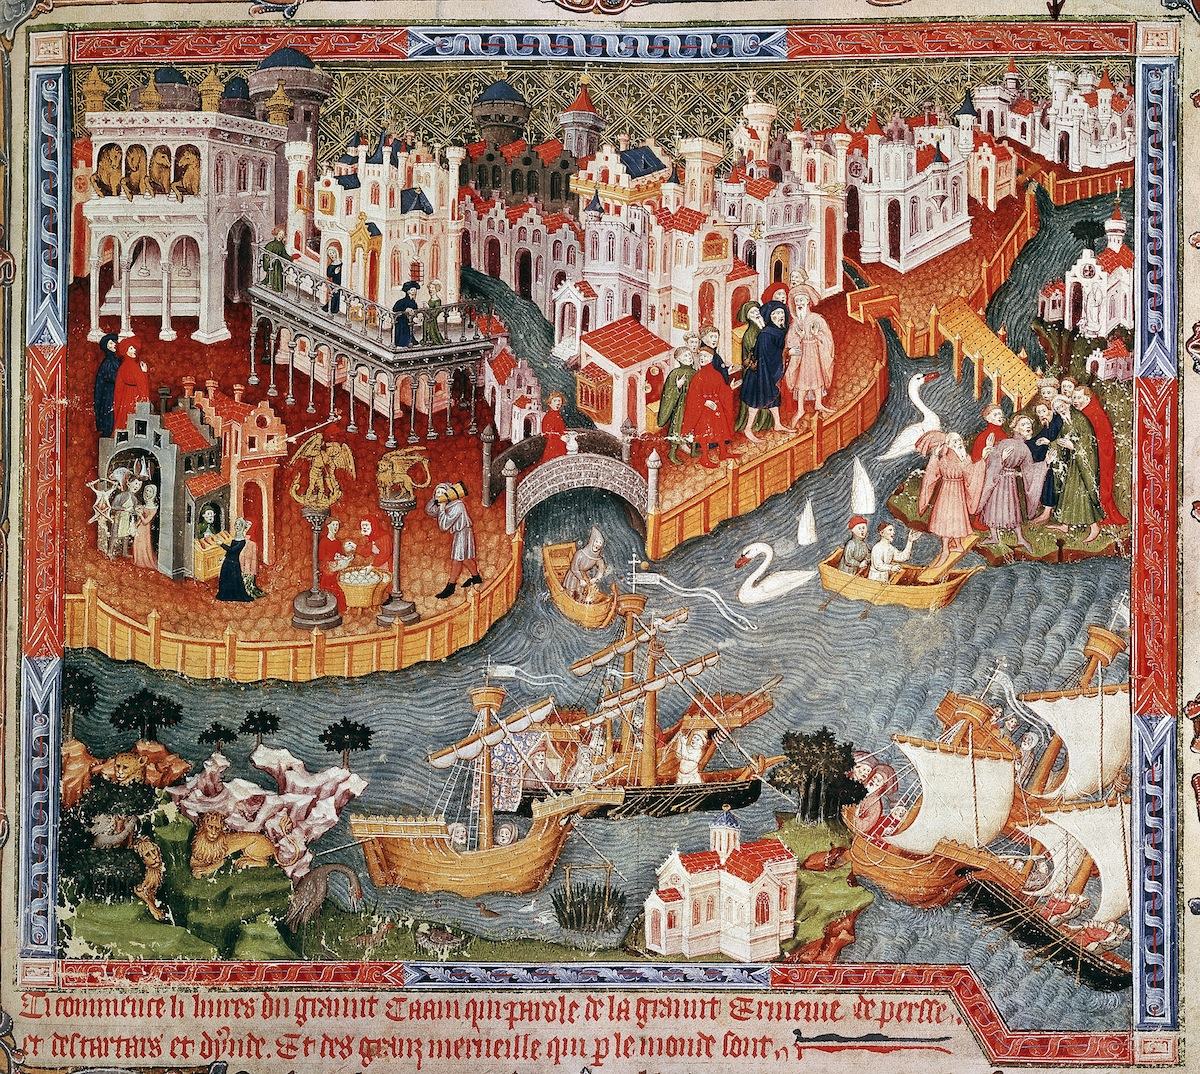 Marco Polo sailing from Venice in 1271. From a late 15th century illuminated manuscript in the collection of the Bodleian Library, Oxford.